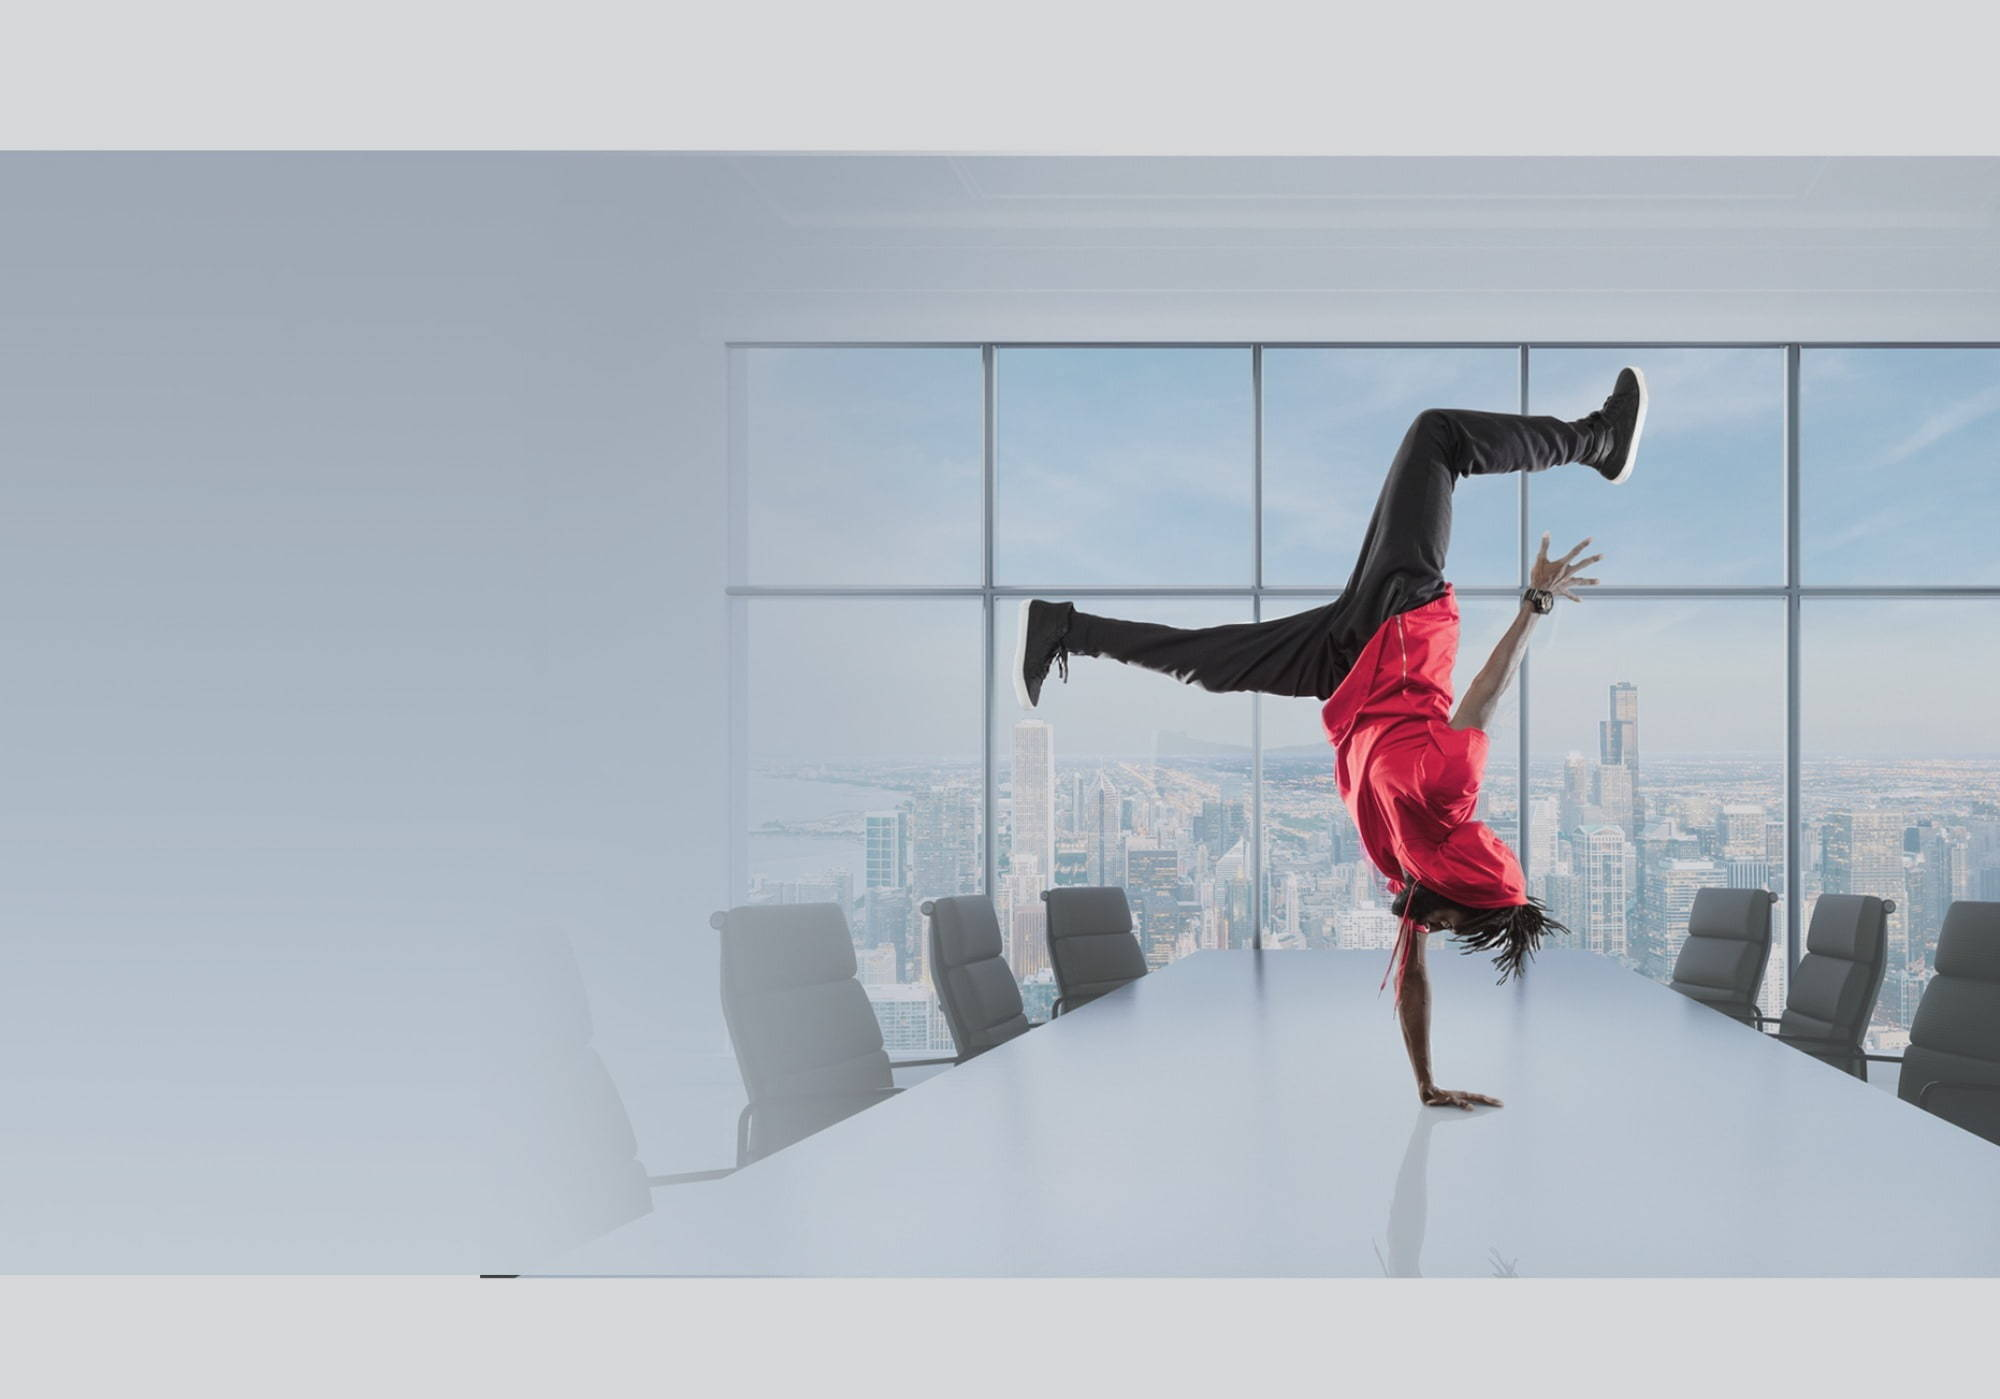 A person breakdancing on a meeting table to demonstrate agility.